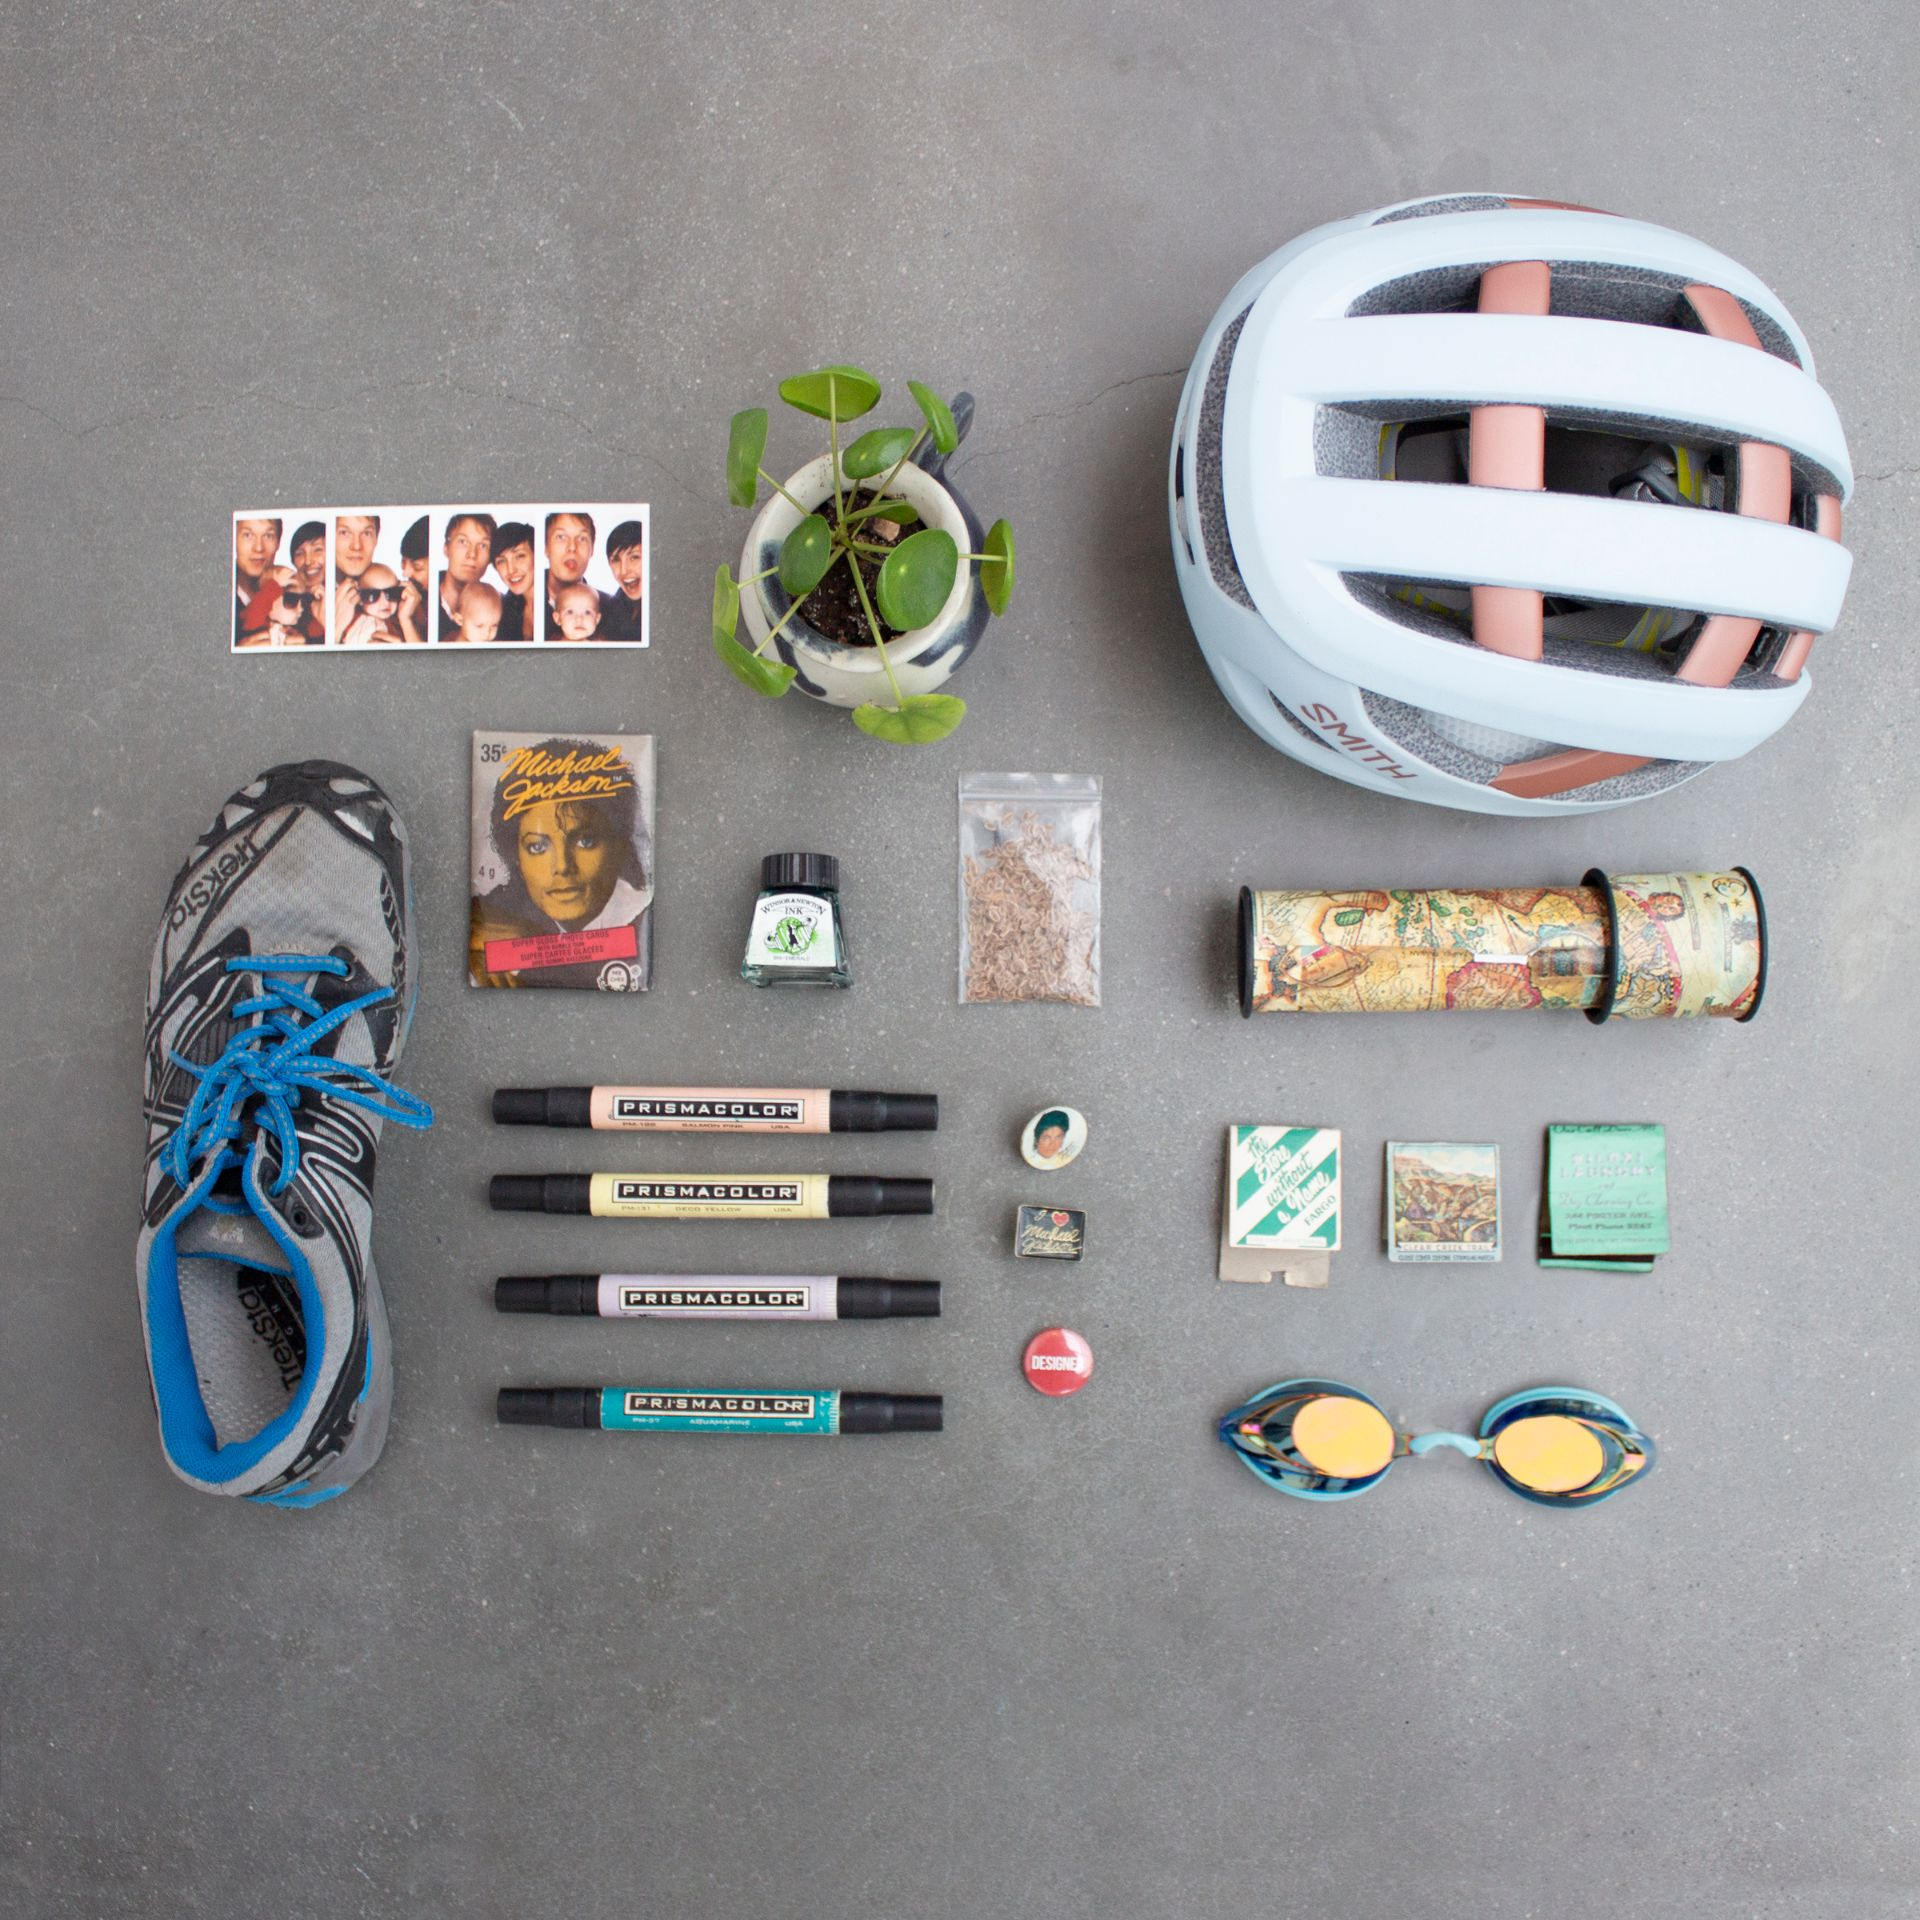 Nicole Redmond's flat lay of items representing her personality.